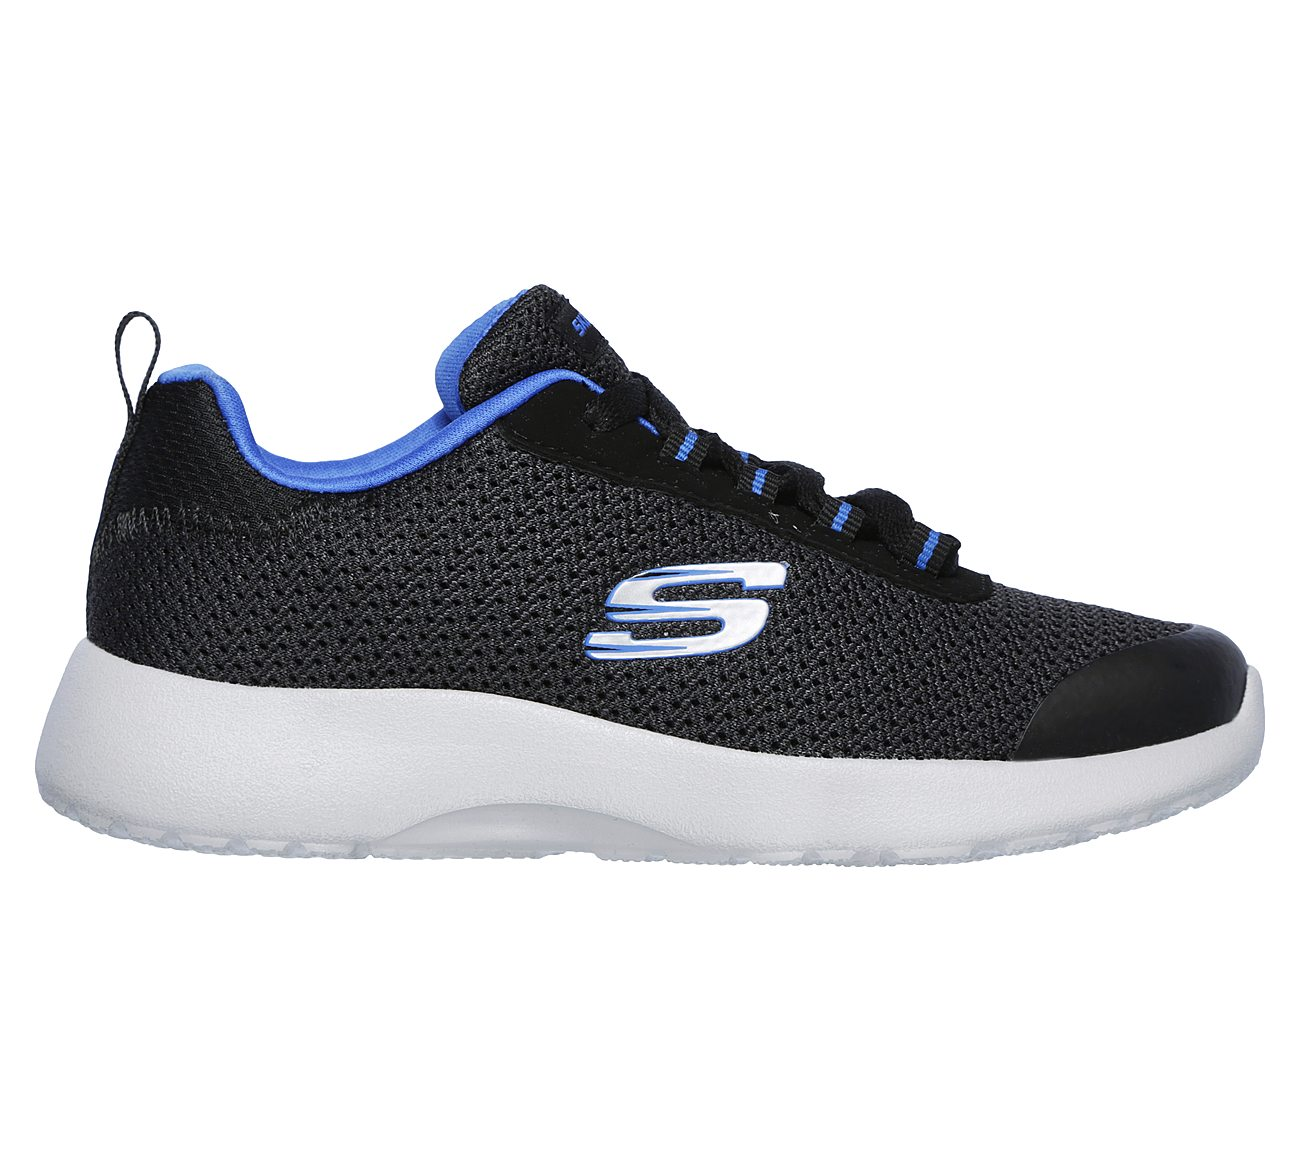 2018 Unisex For Sale Outlet Shopping Online Skechers Dynamight Turbo Dash Sneaker(Boys') -Red/Black Cheap For Nice Cheap Footlocker Finishline 5CcZXxx